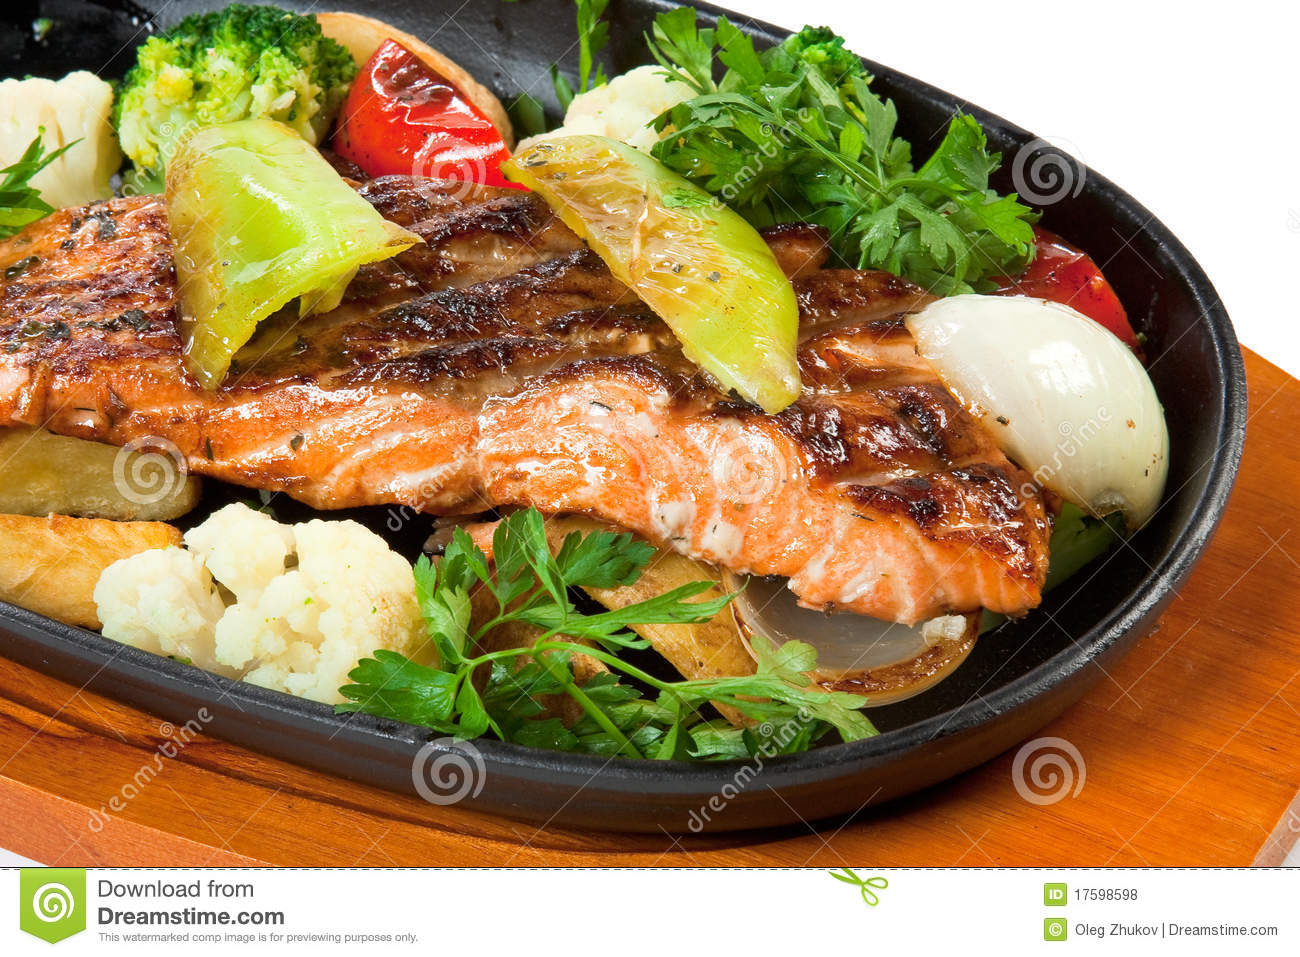 Fried fish with vegetables stock photo image of for What vegetables go with fish